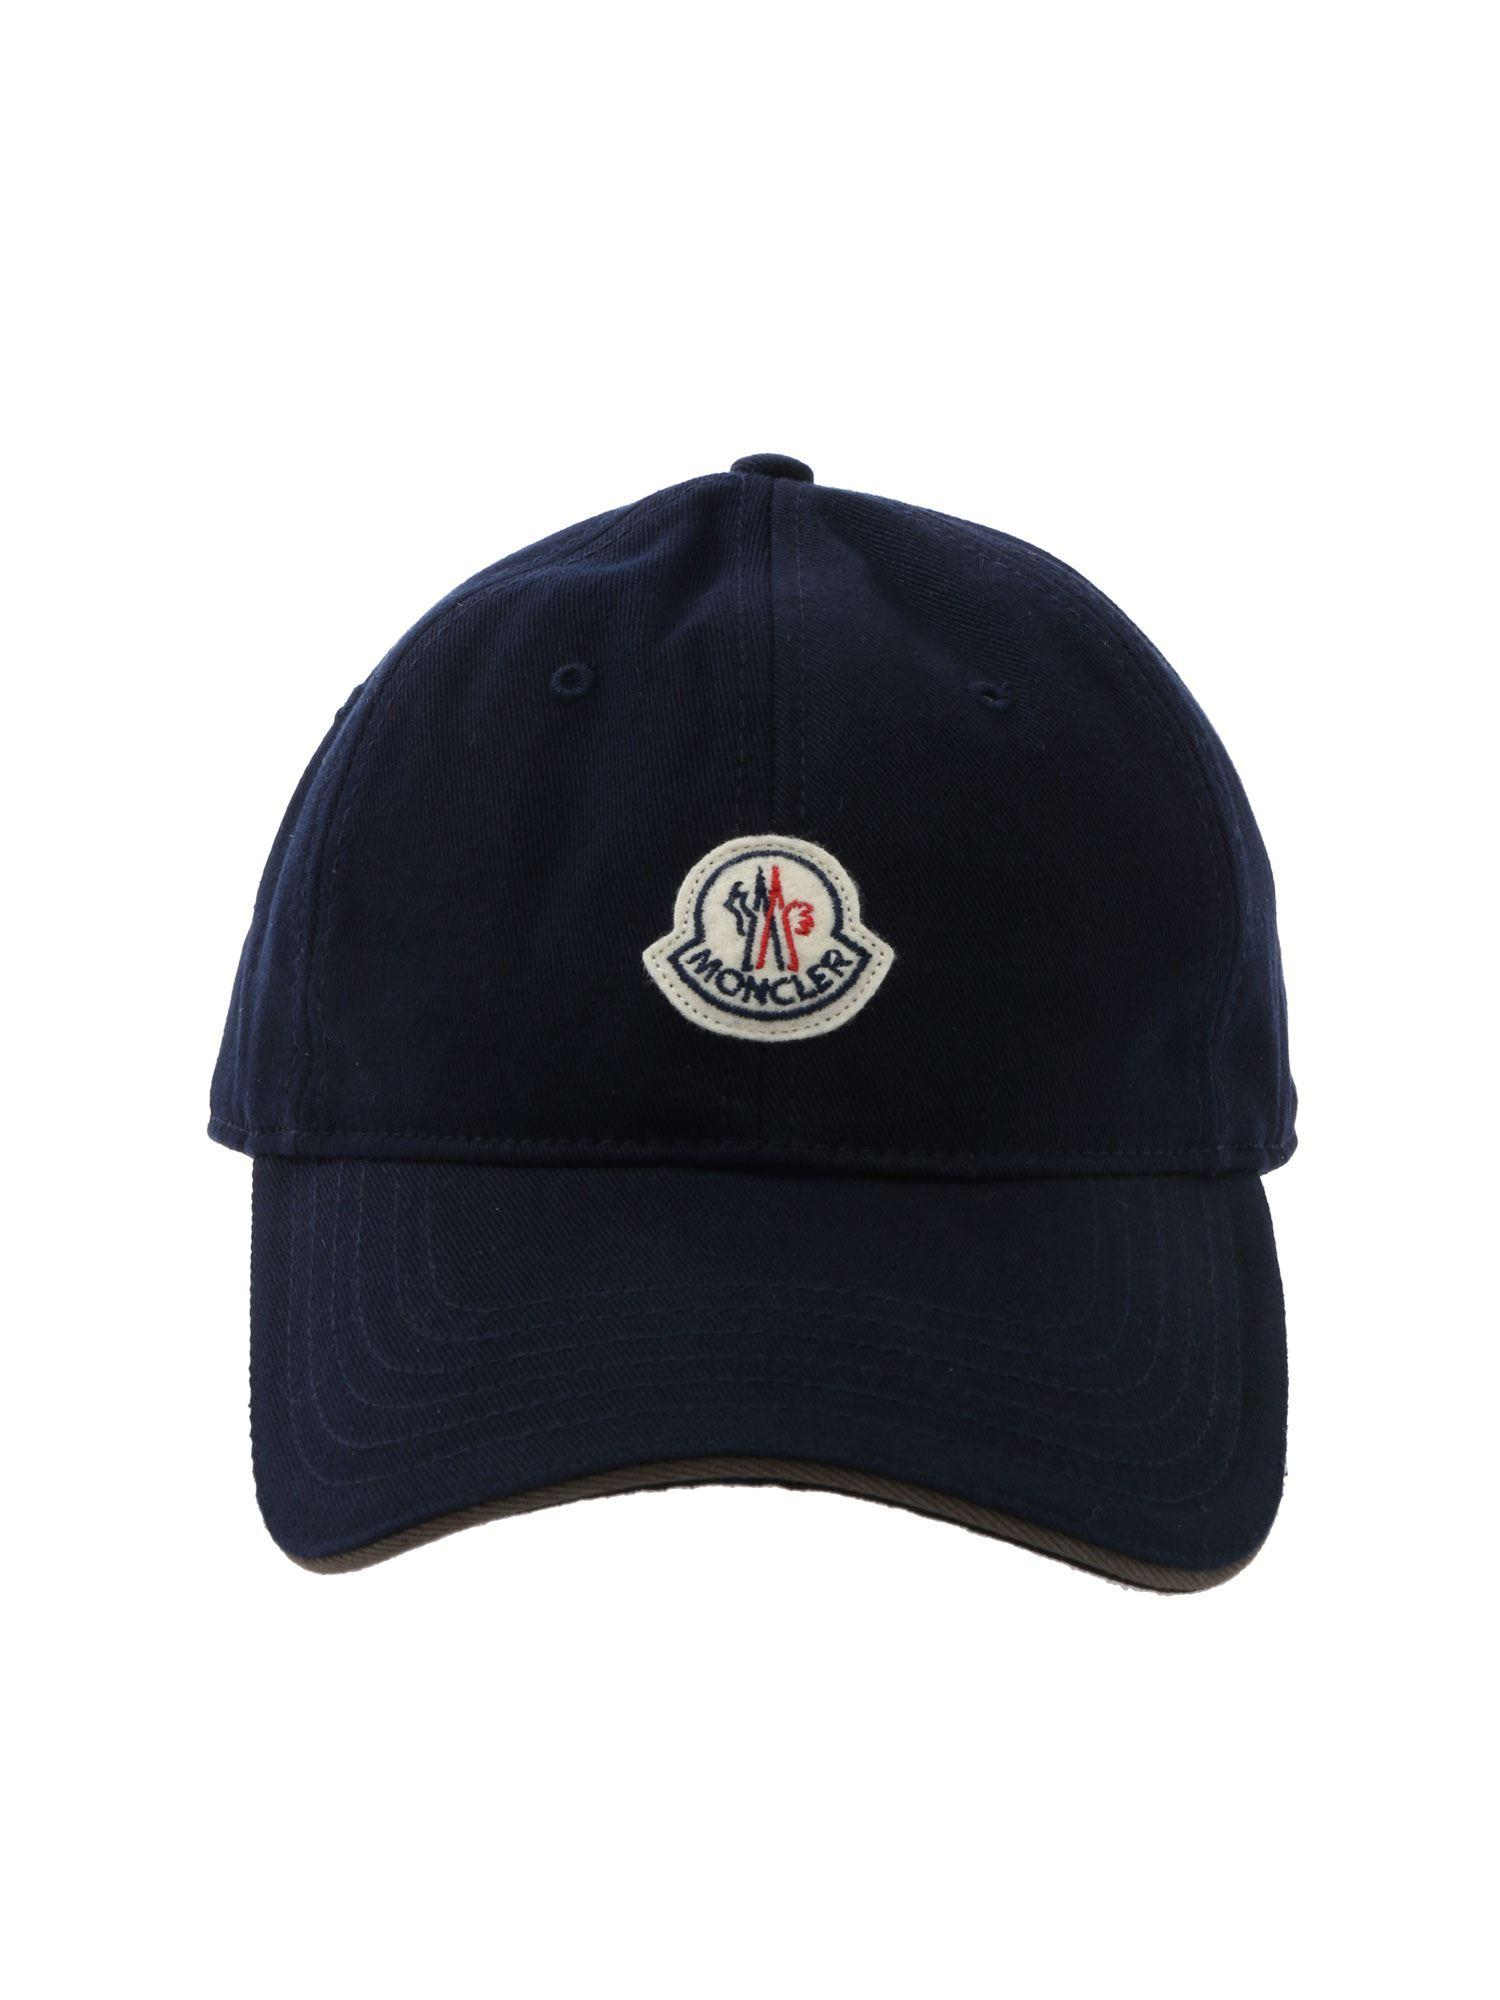 345b6f2604ce Lyst - Moncler Blue Baseball Hat in Blue for Men